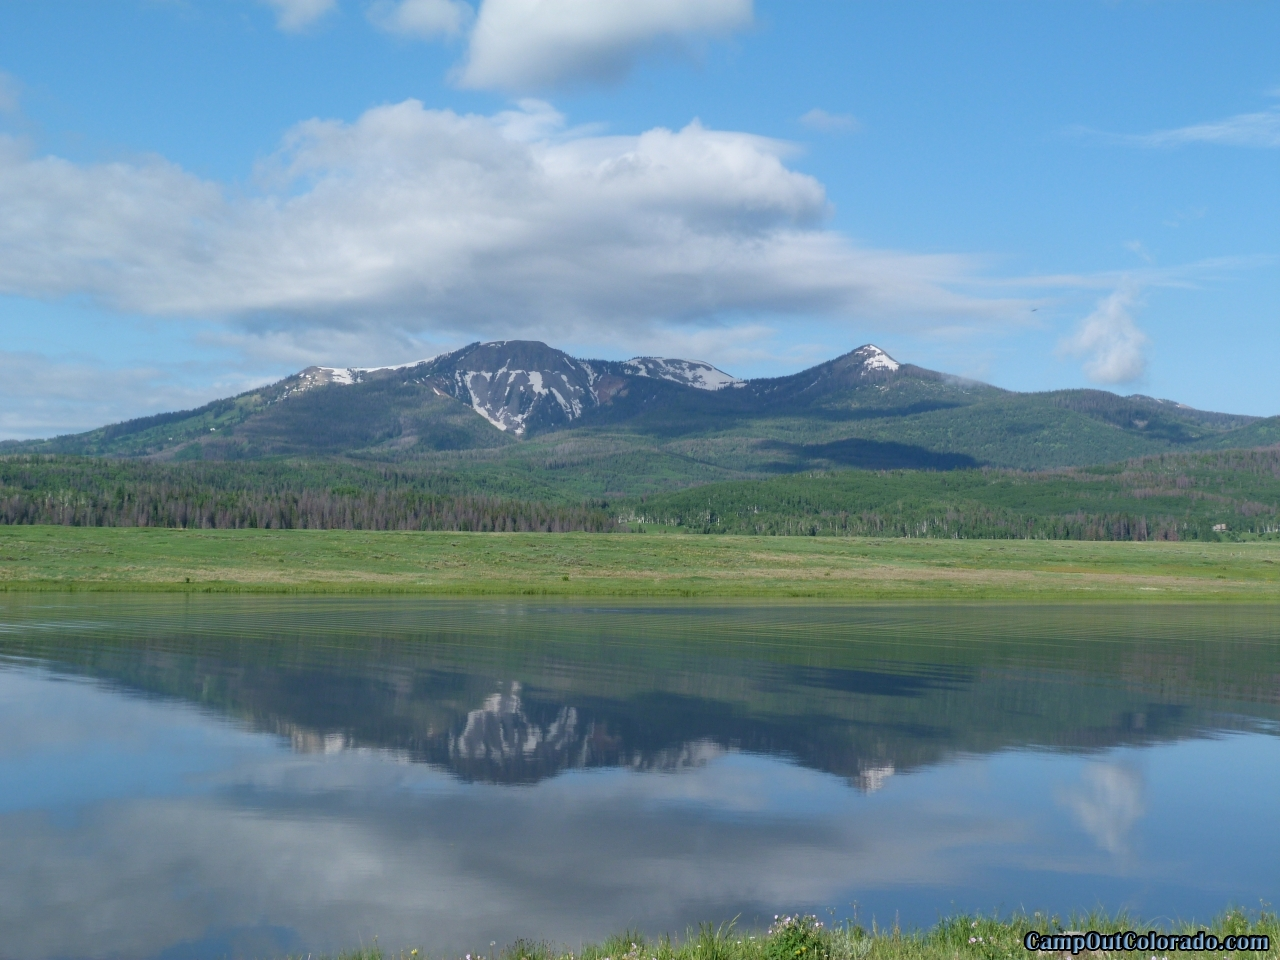 Free Admission to Colorado National Parks April 16 - 24